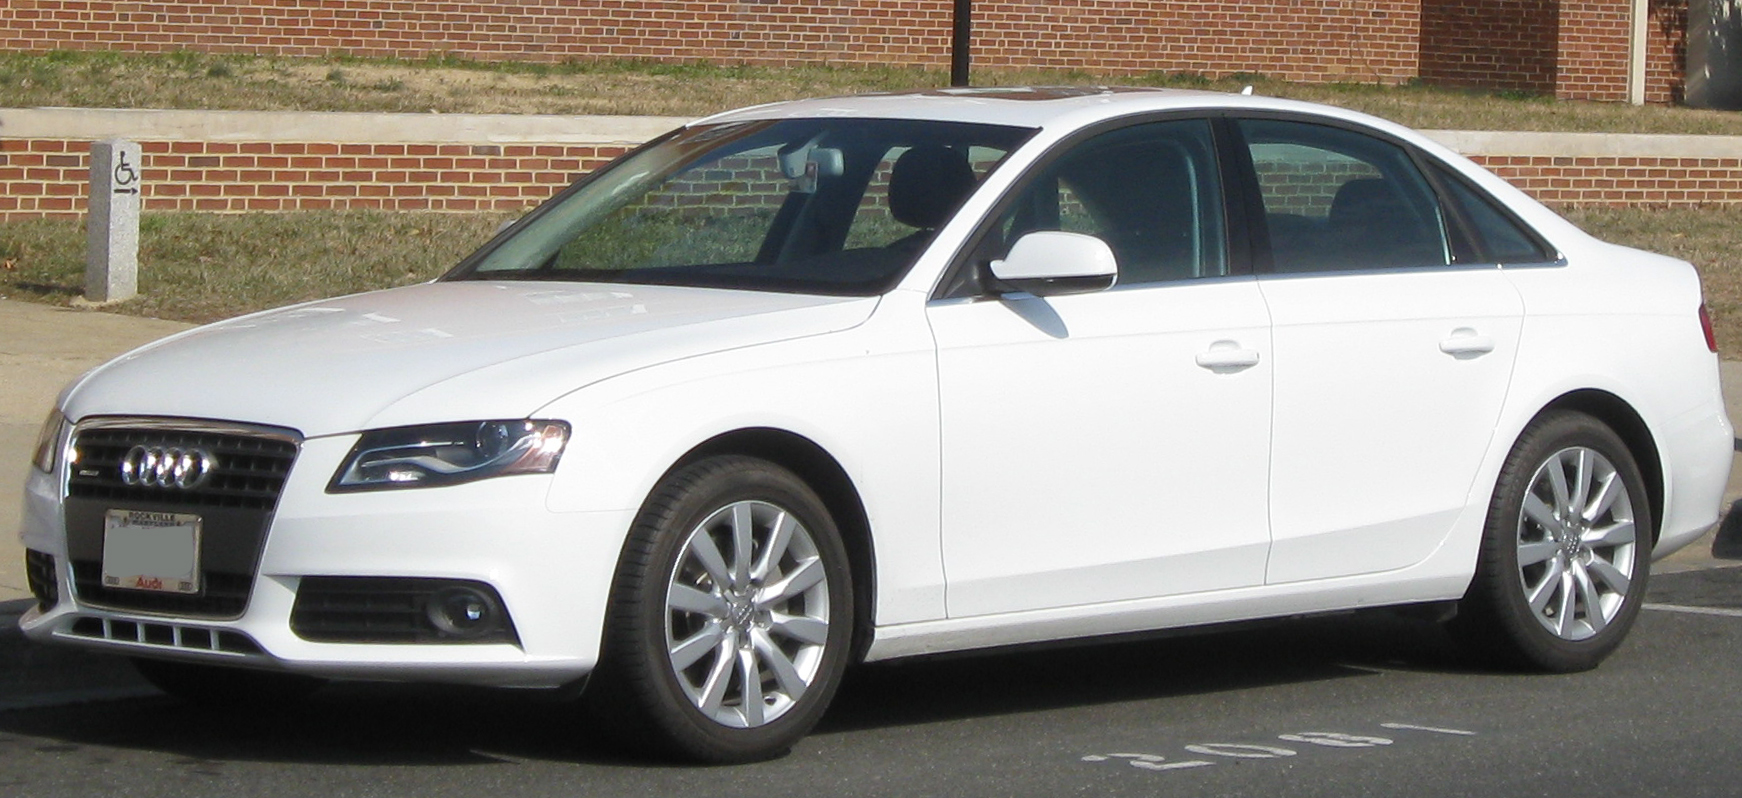 File:Audi A4 sedan -- 02-18-2011.jpg - Wikimedia Commons